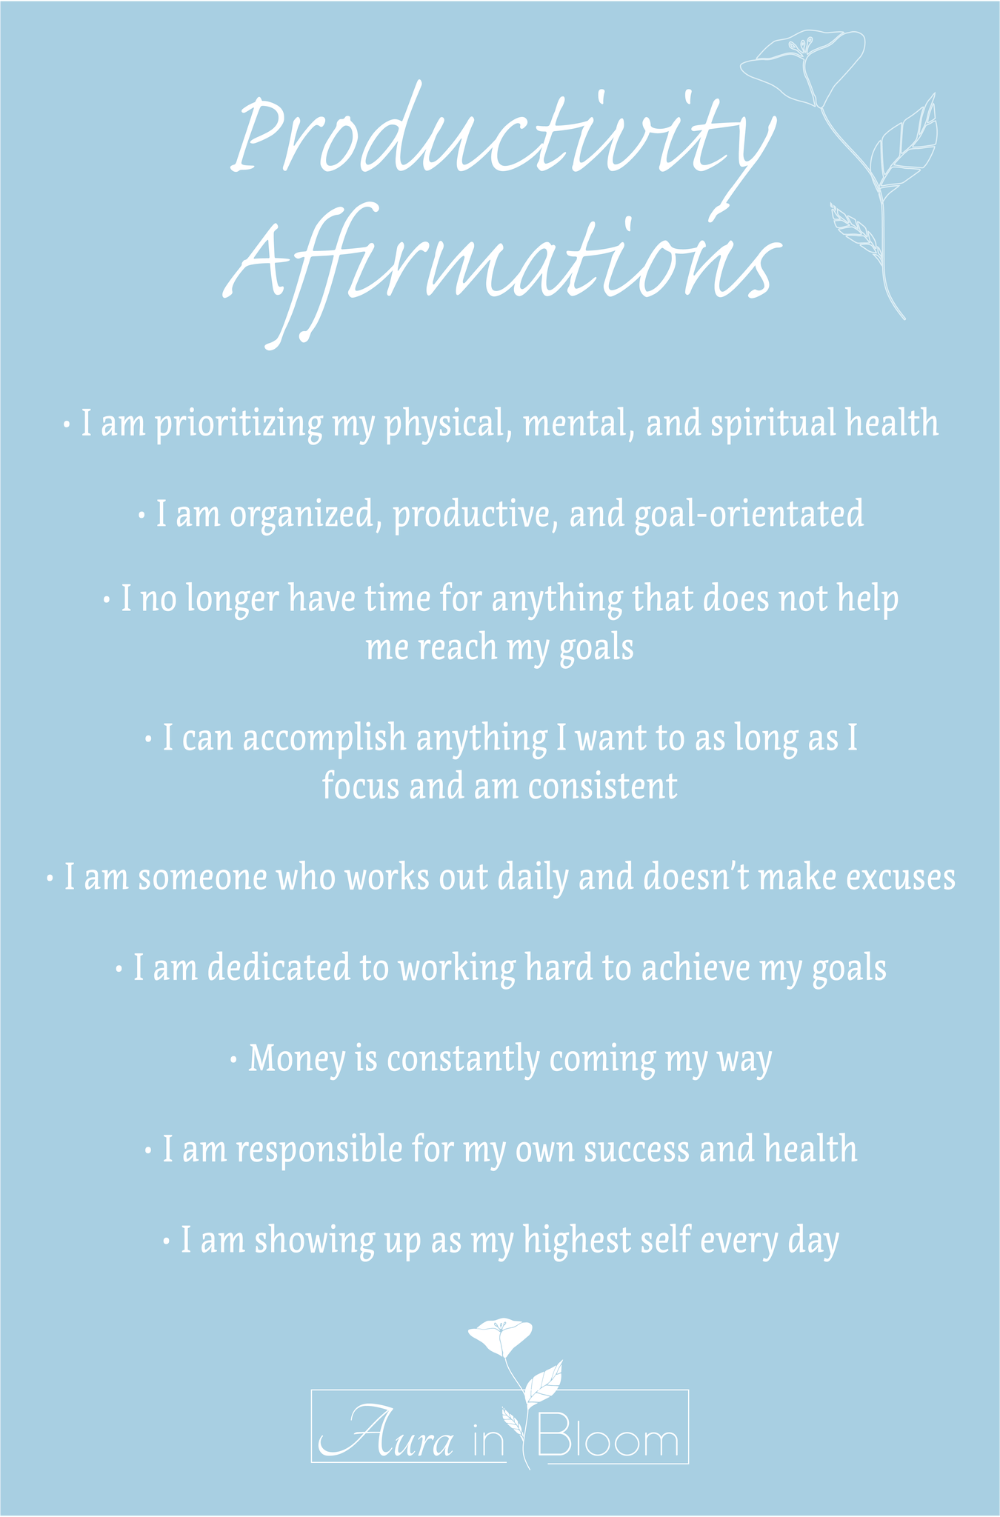 A Collection of Productivity Affirmations